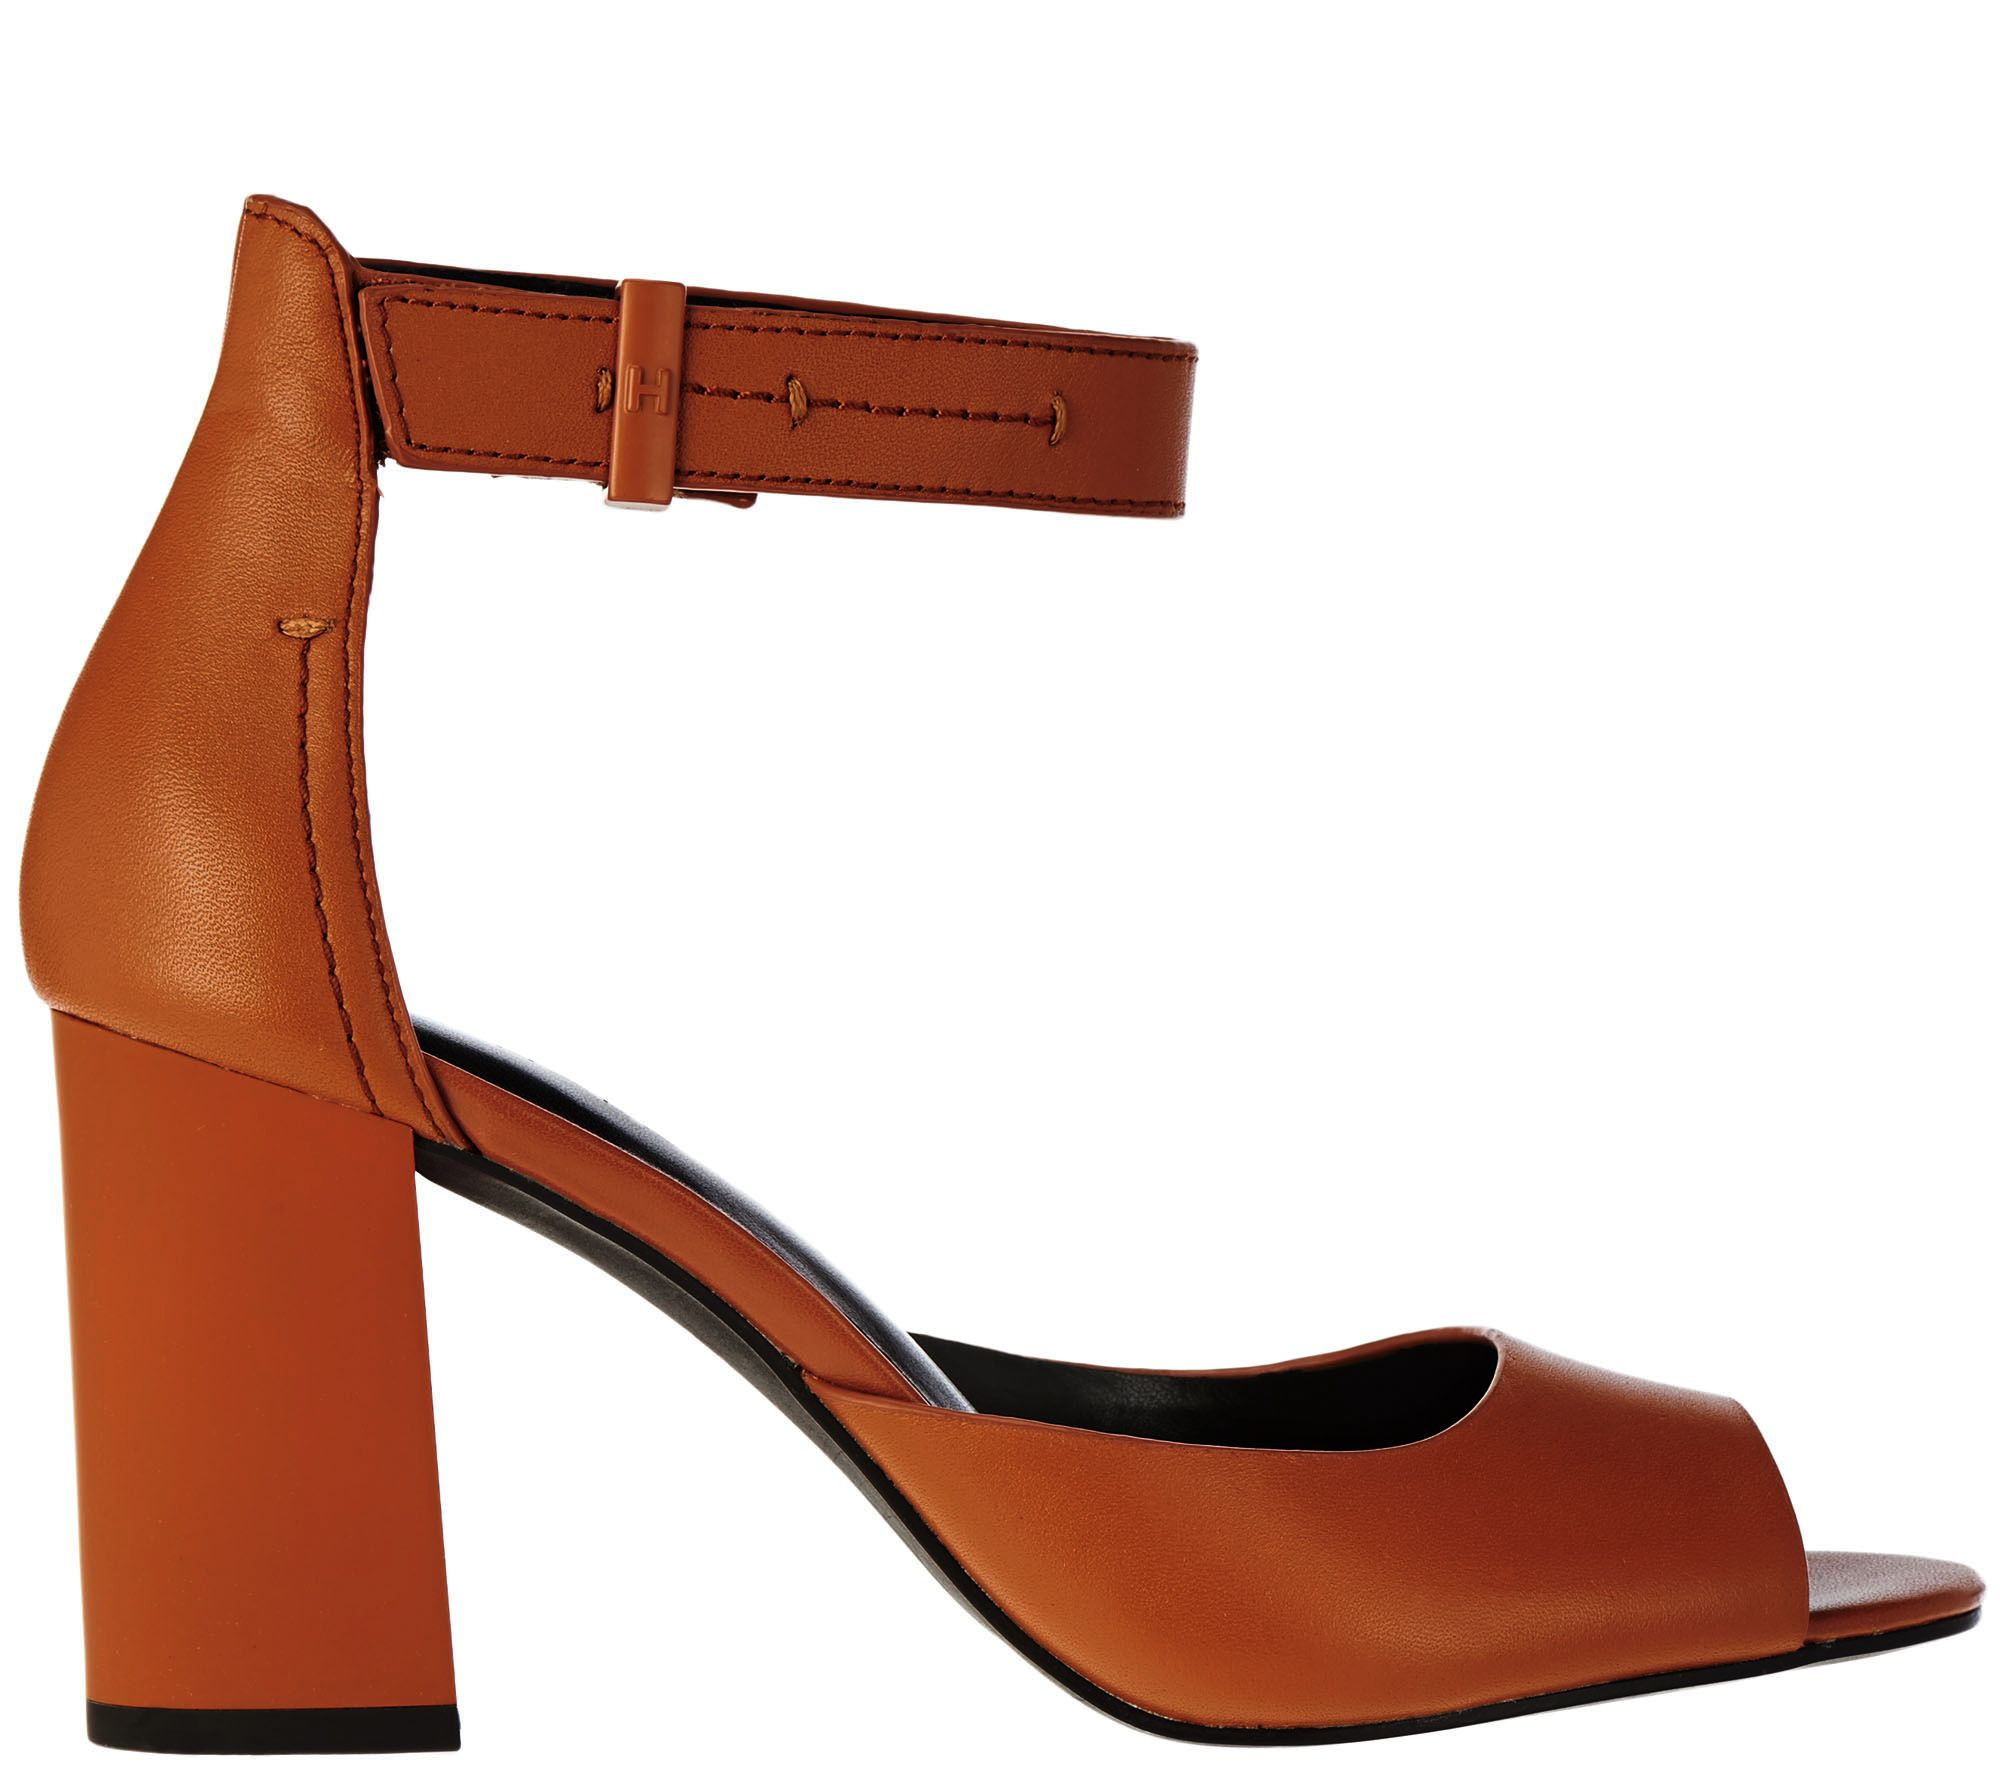 b9a82f3f9b3523 H by Halston Leather Block Heels with Adjustable Strap - Carina - Page 1 —  QVC.com